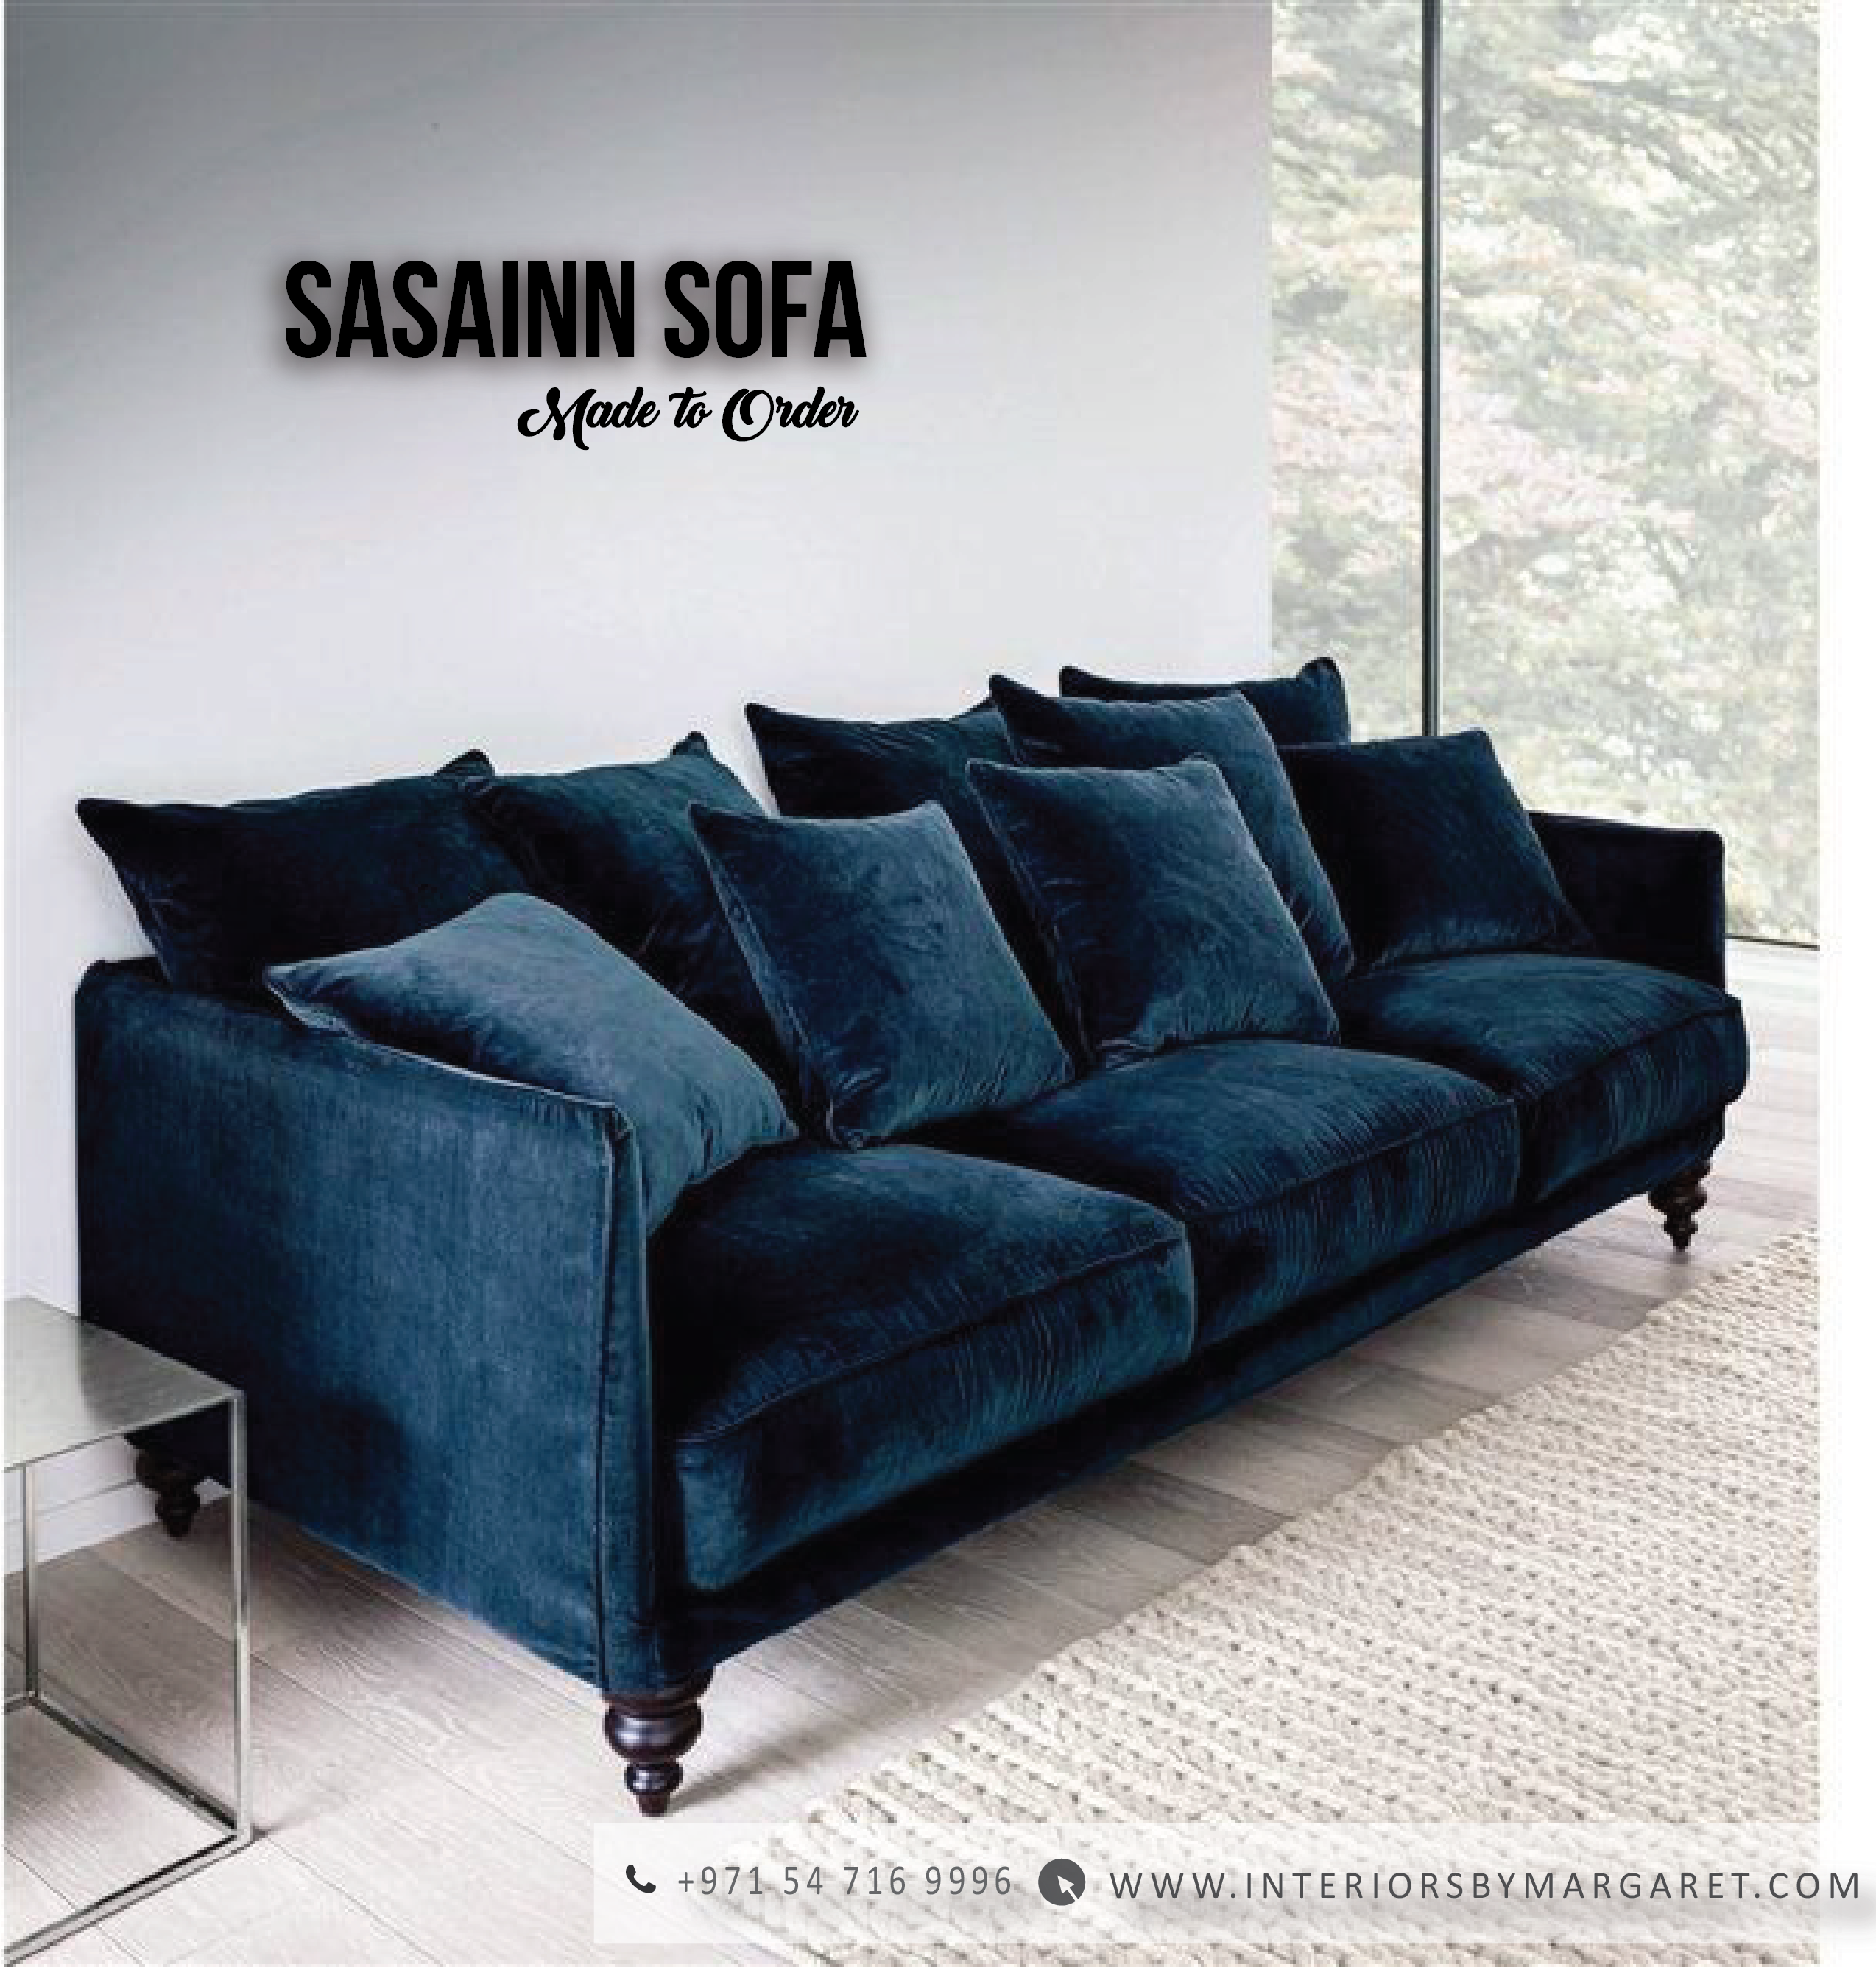 Versatile Sofa Range From Interiors By Margaret Collection Working In Generous Proportions The Desi Apartment Living Room Trendy Living Rooms Apartment Decor